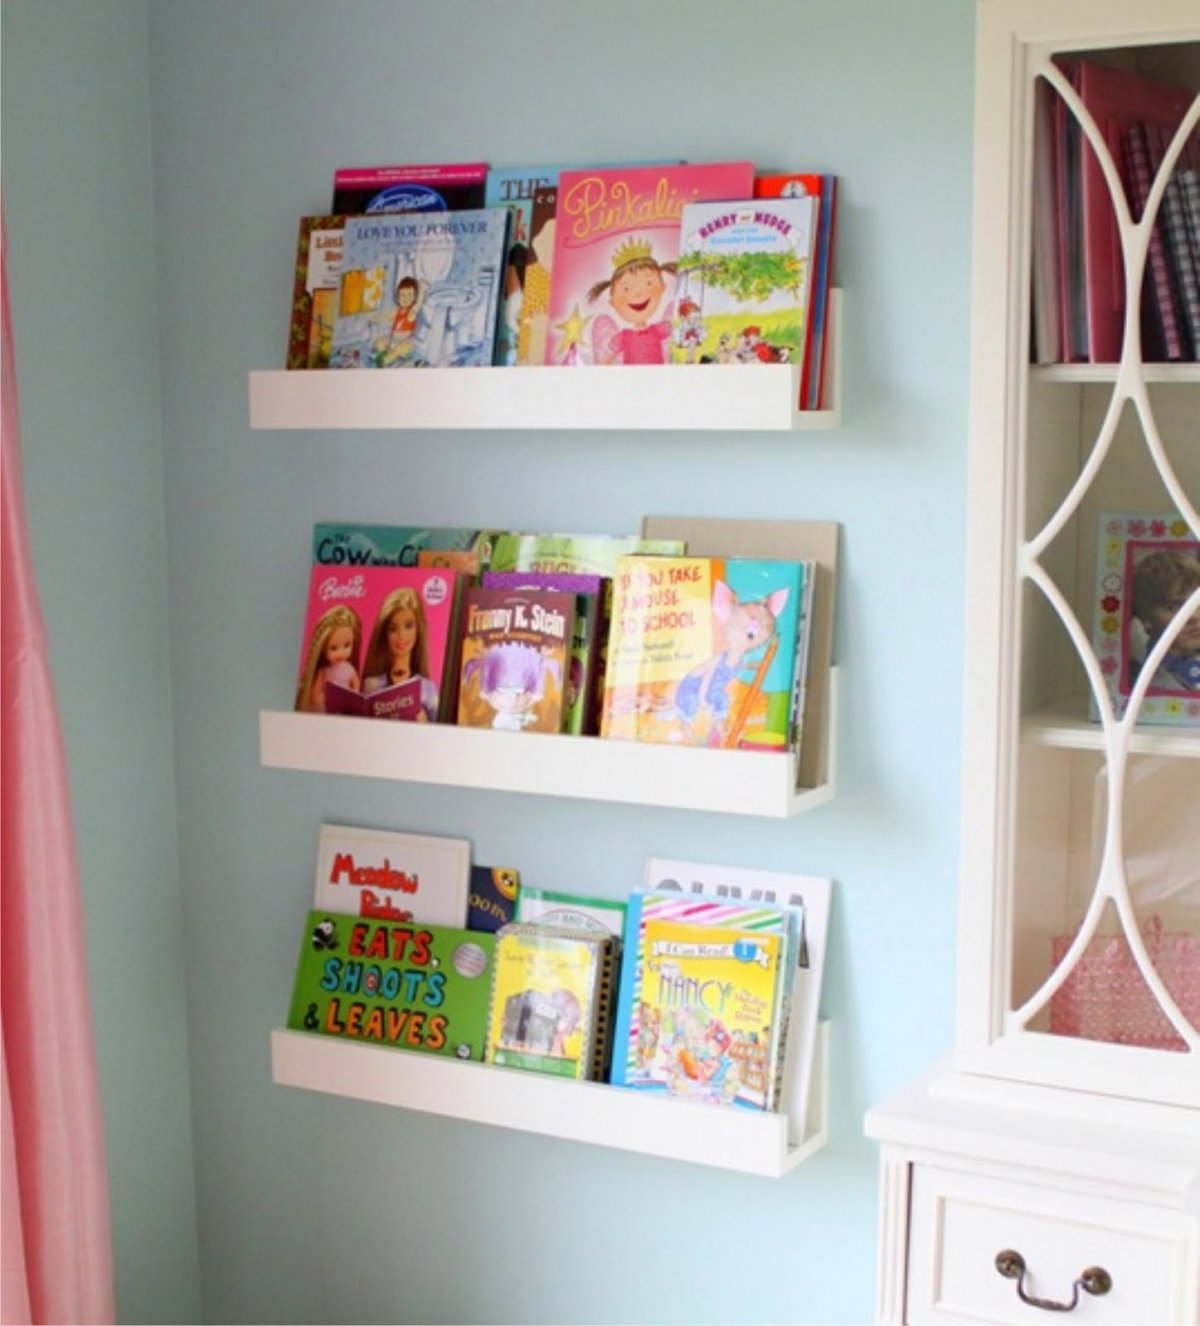 Amazing DIY White Minimalist Wall-Mounted Book Shelves for Little Girls Bedroom  Decoration - wall mounted bookshelves for kids